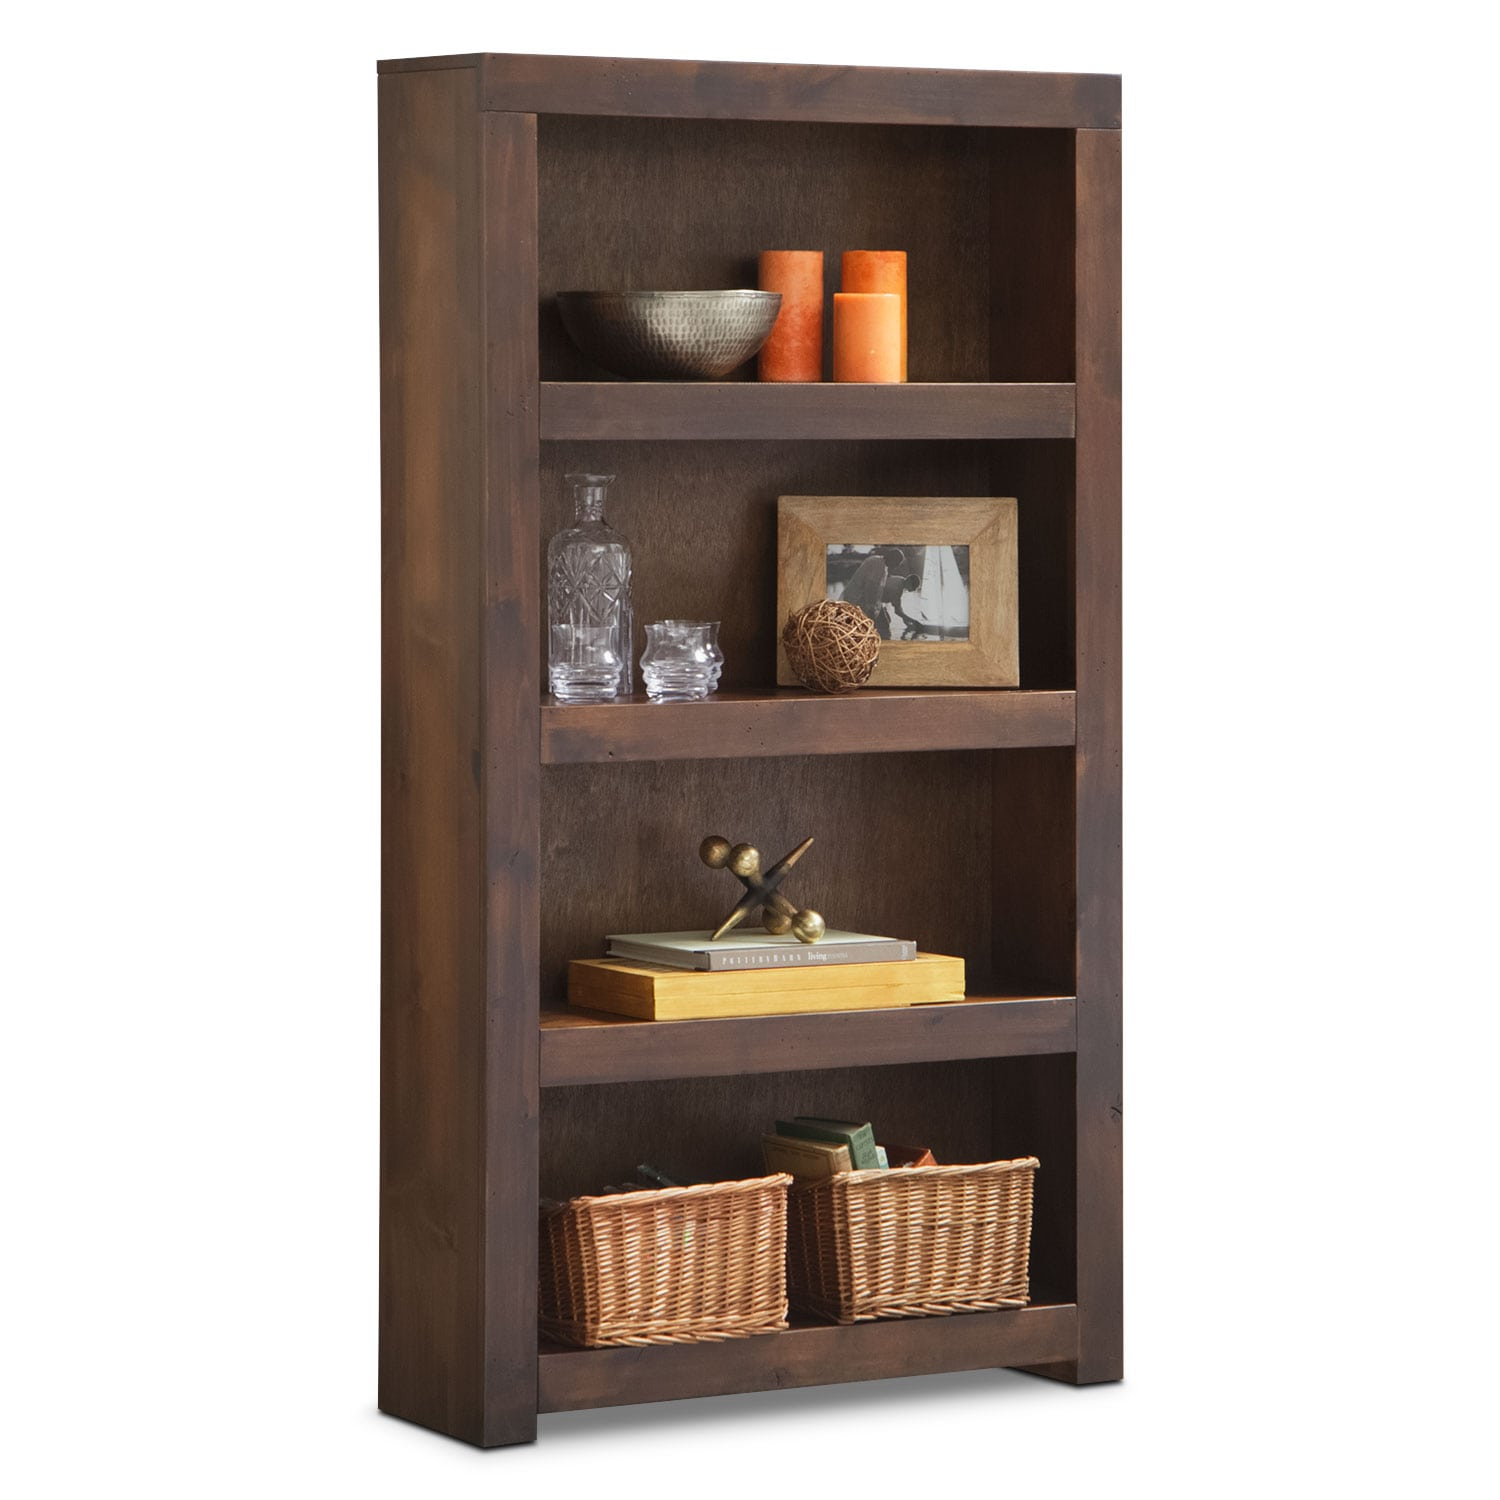 "Home Office Furniture - Bricklin 60"" Bookcase - Tobacco"